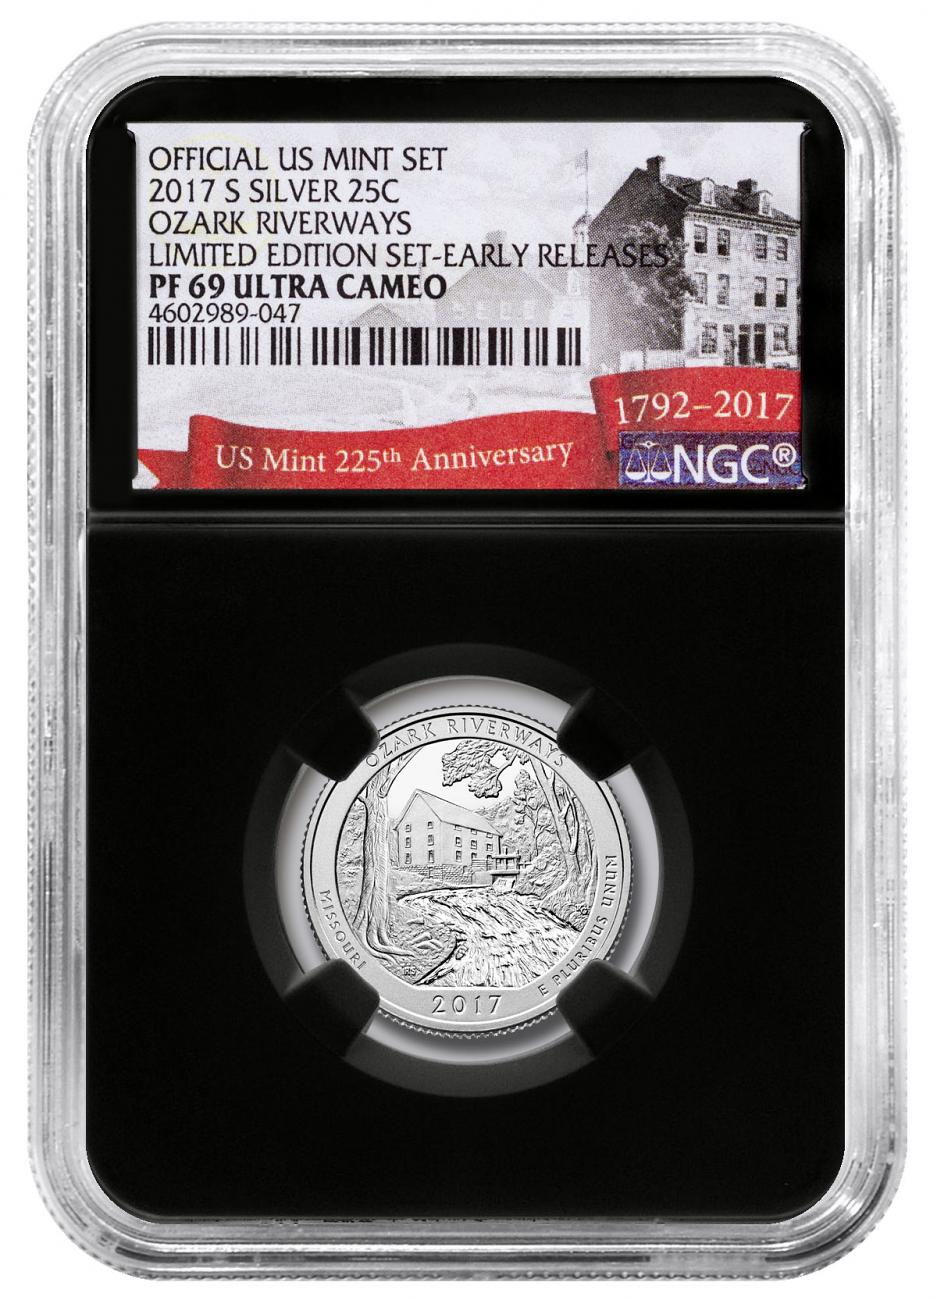 2017-S Silver Ozark National Scenic Riverways Proof America the Beautiful Quarter From Limited Edition Silver Proof Set NGC PF69 UC ER Black Core Holder Exclusive U.S. Mint 225th Anniversary Label